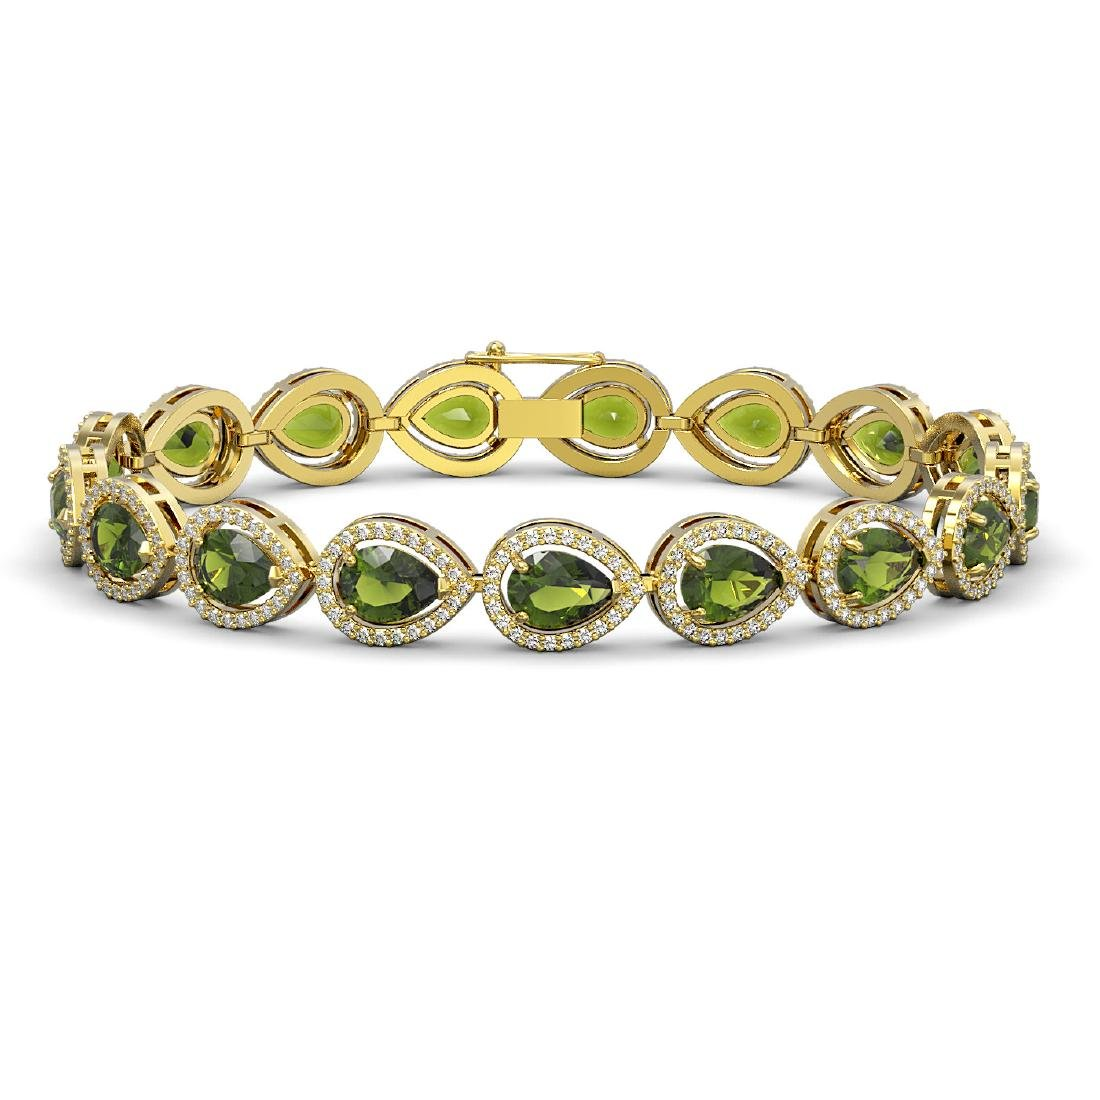 16.93 CTW Tourmaline & Diamond Halo Bracelet 10K Yellow